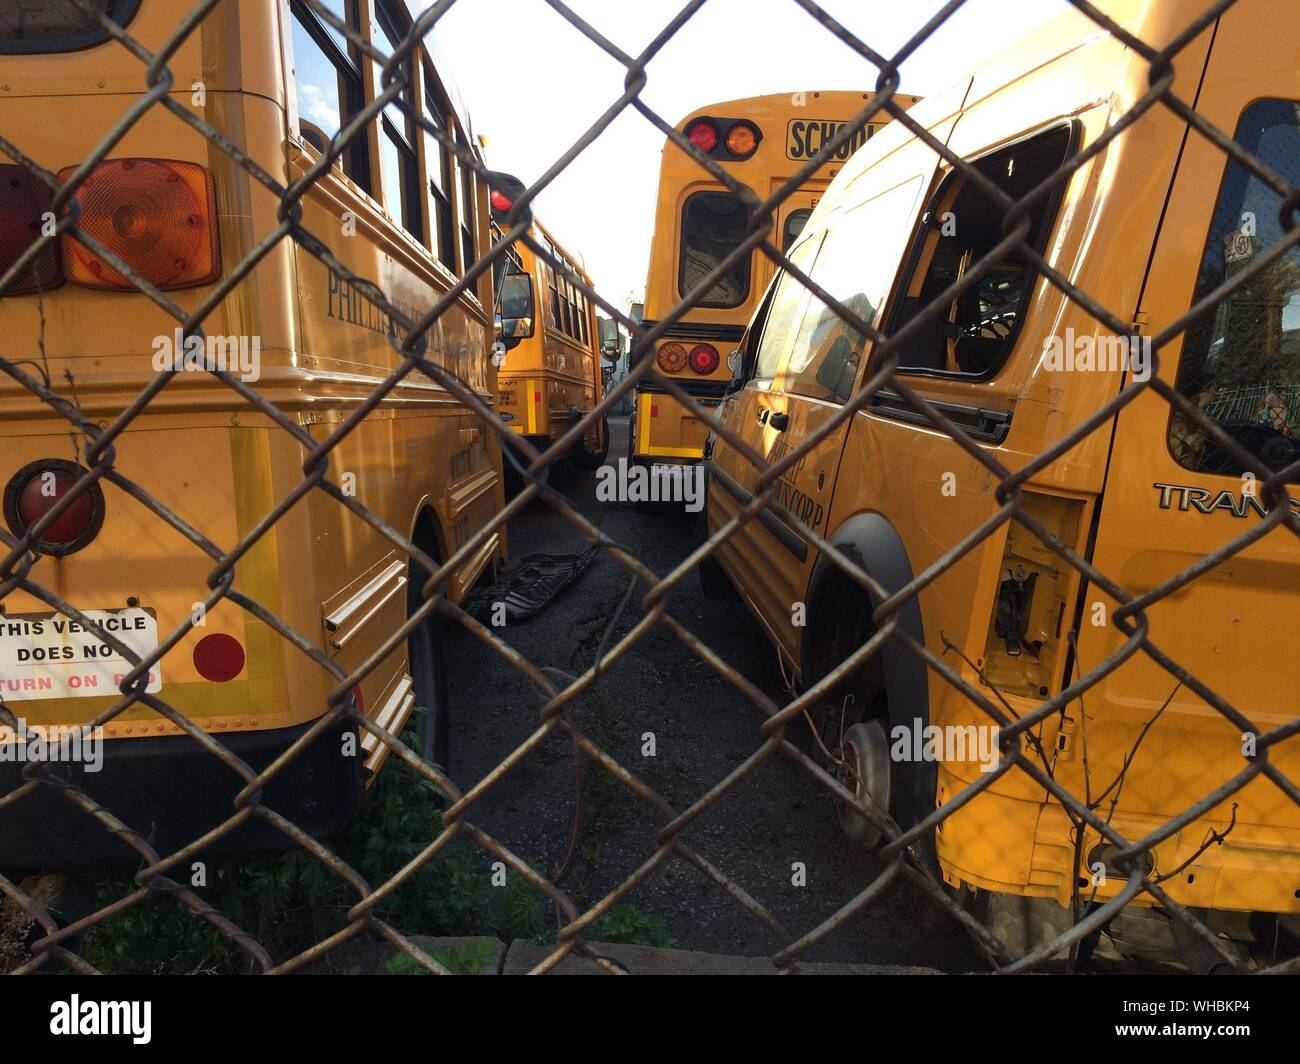 School Buses In Parking Lot Seen Through Chainlink Fence Stock Photo